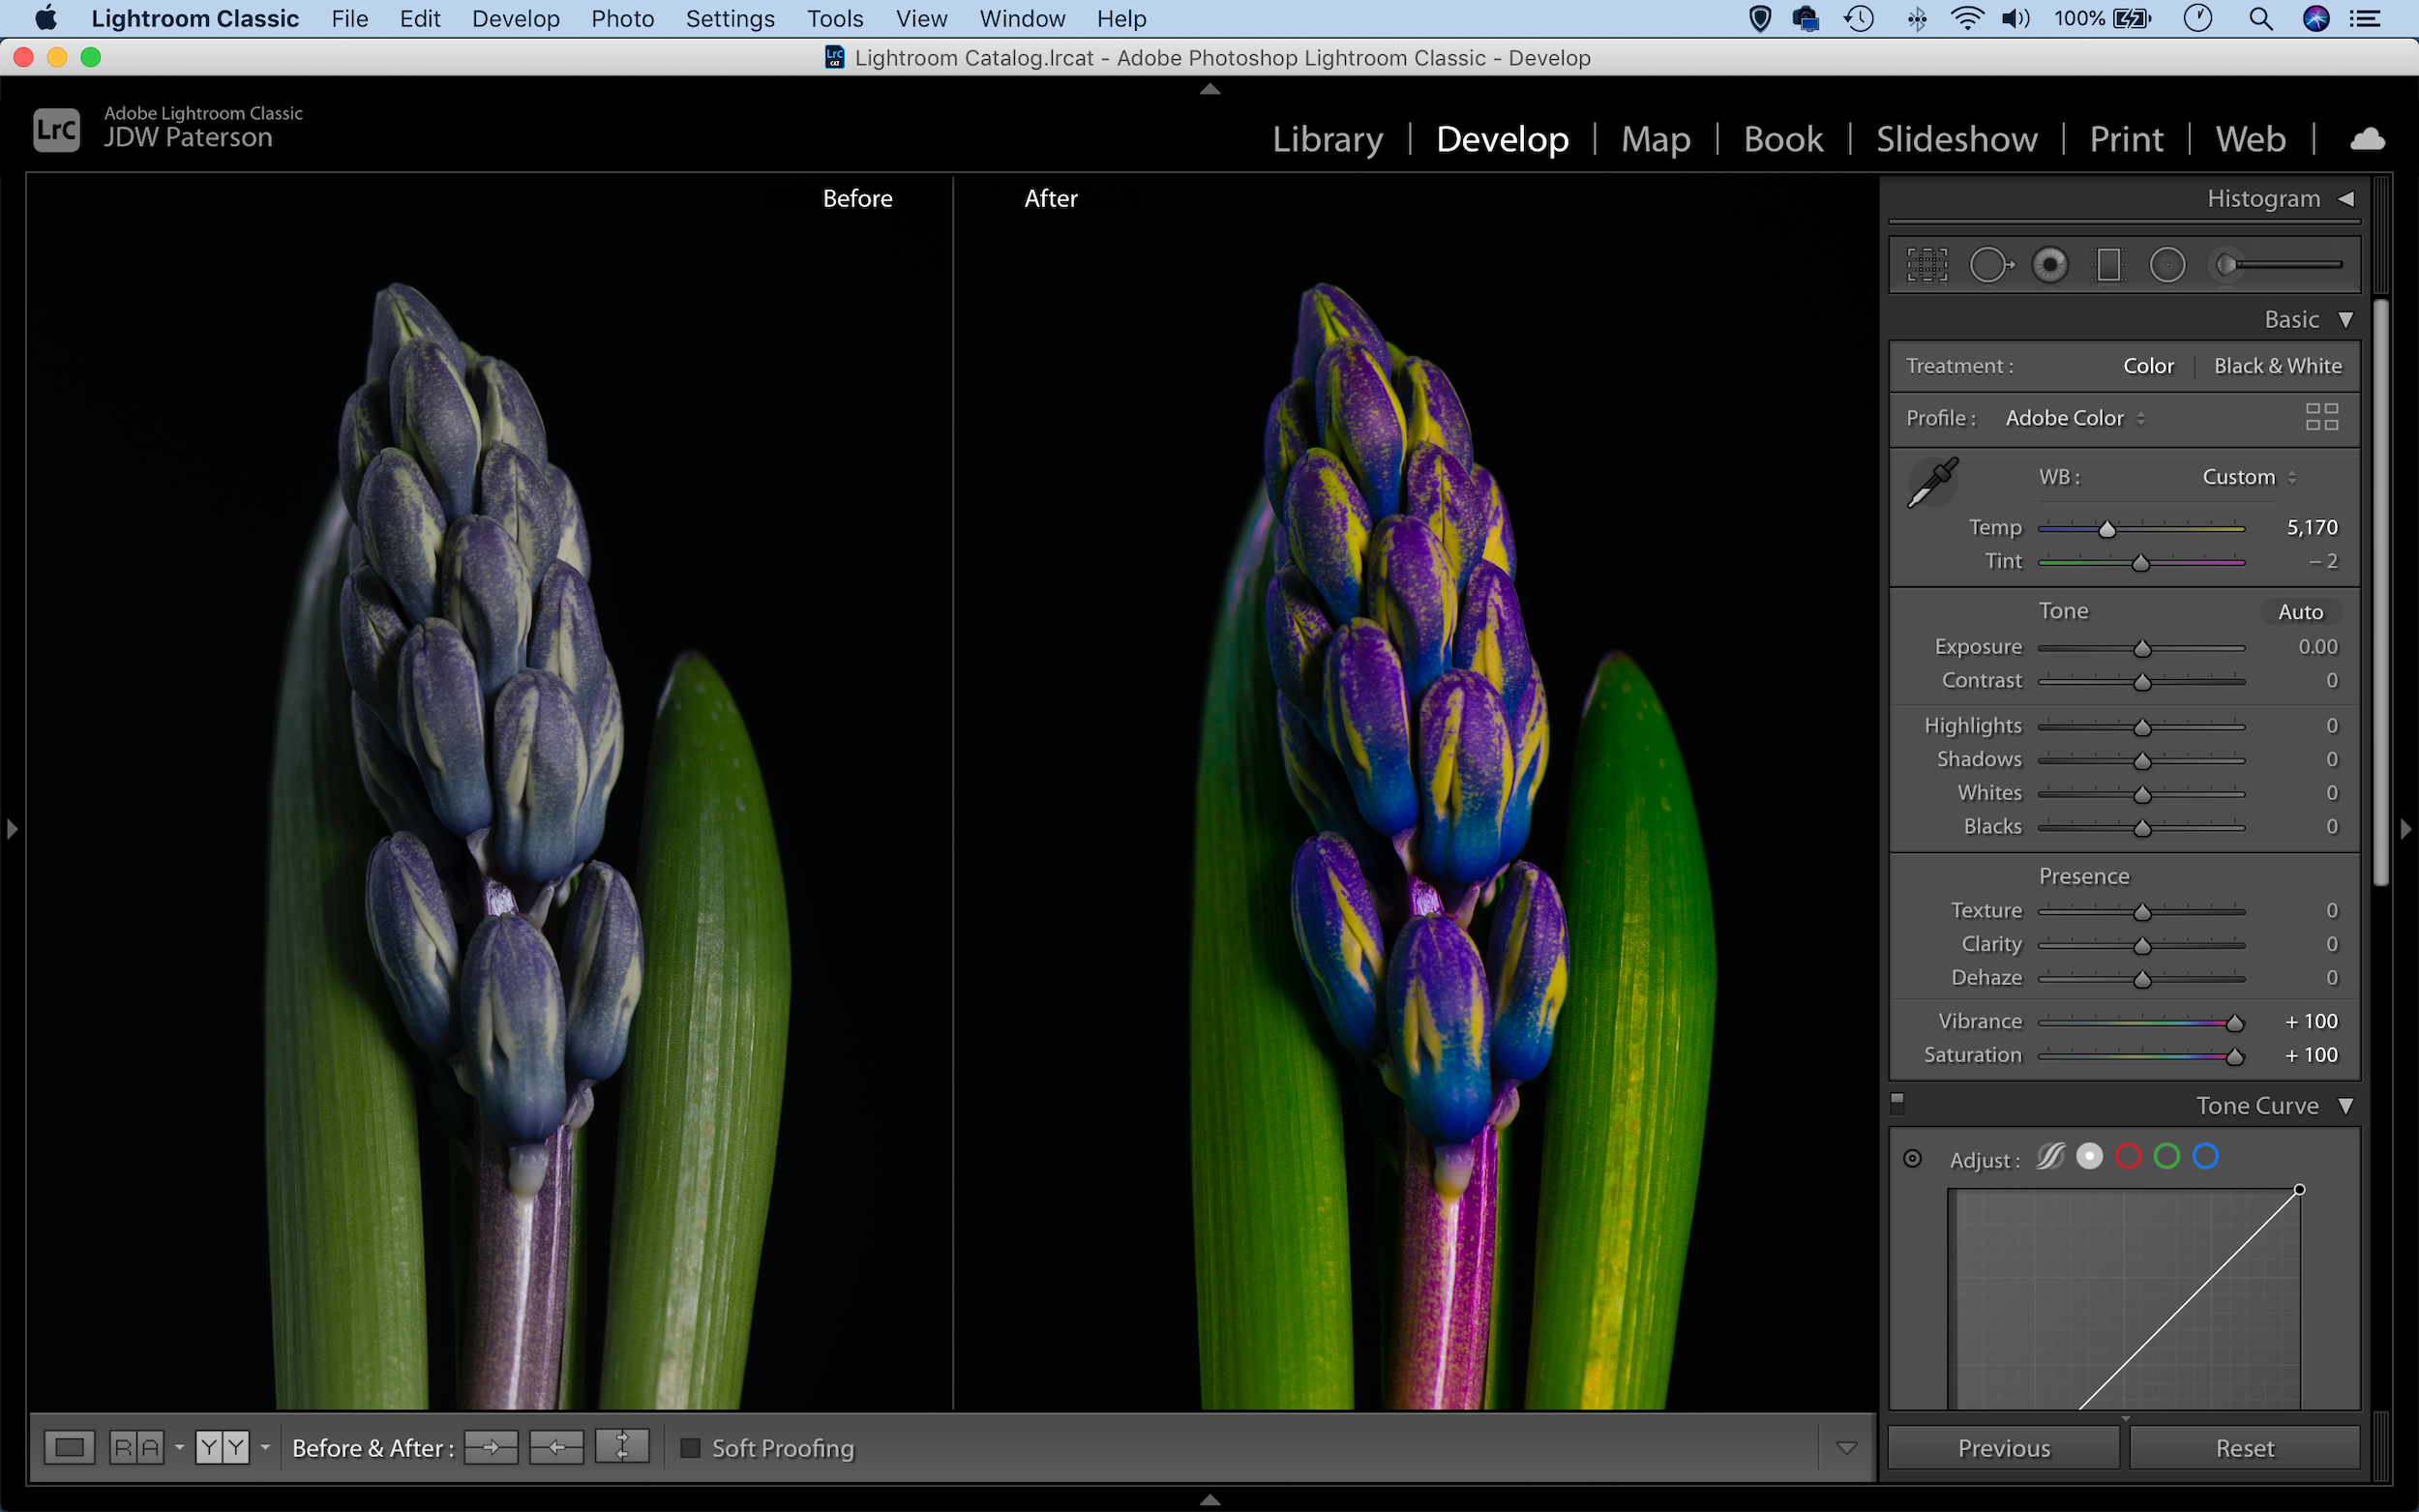 Screenshot showing a before and after comparison in Lightroom